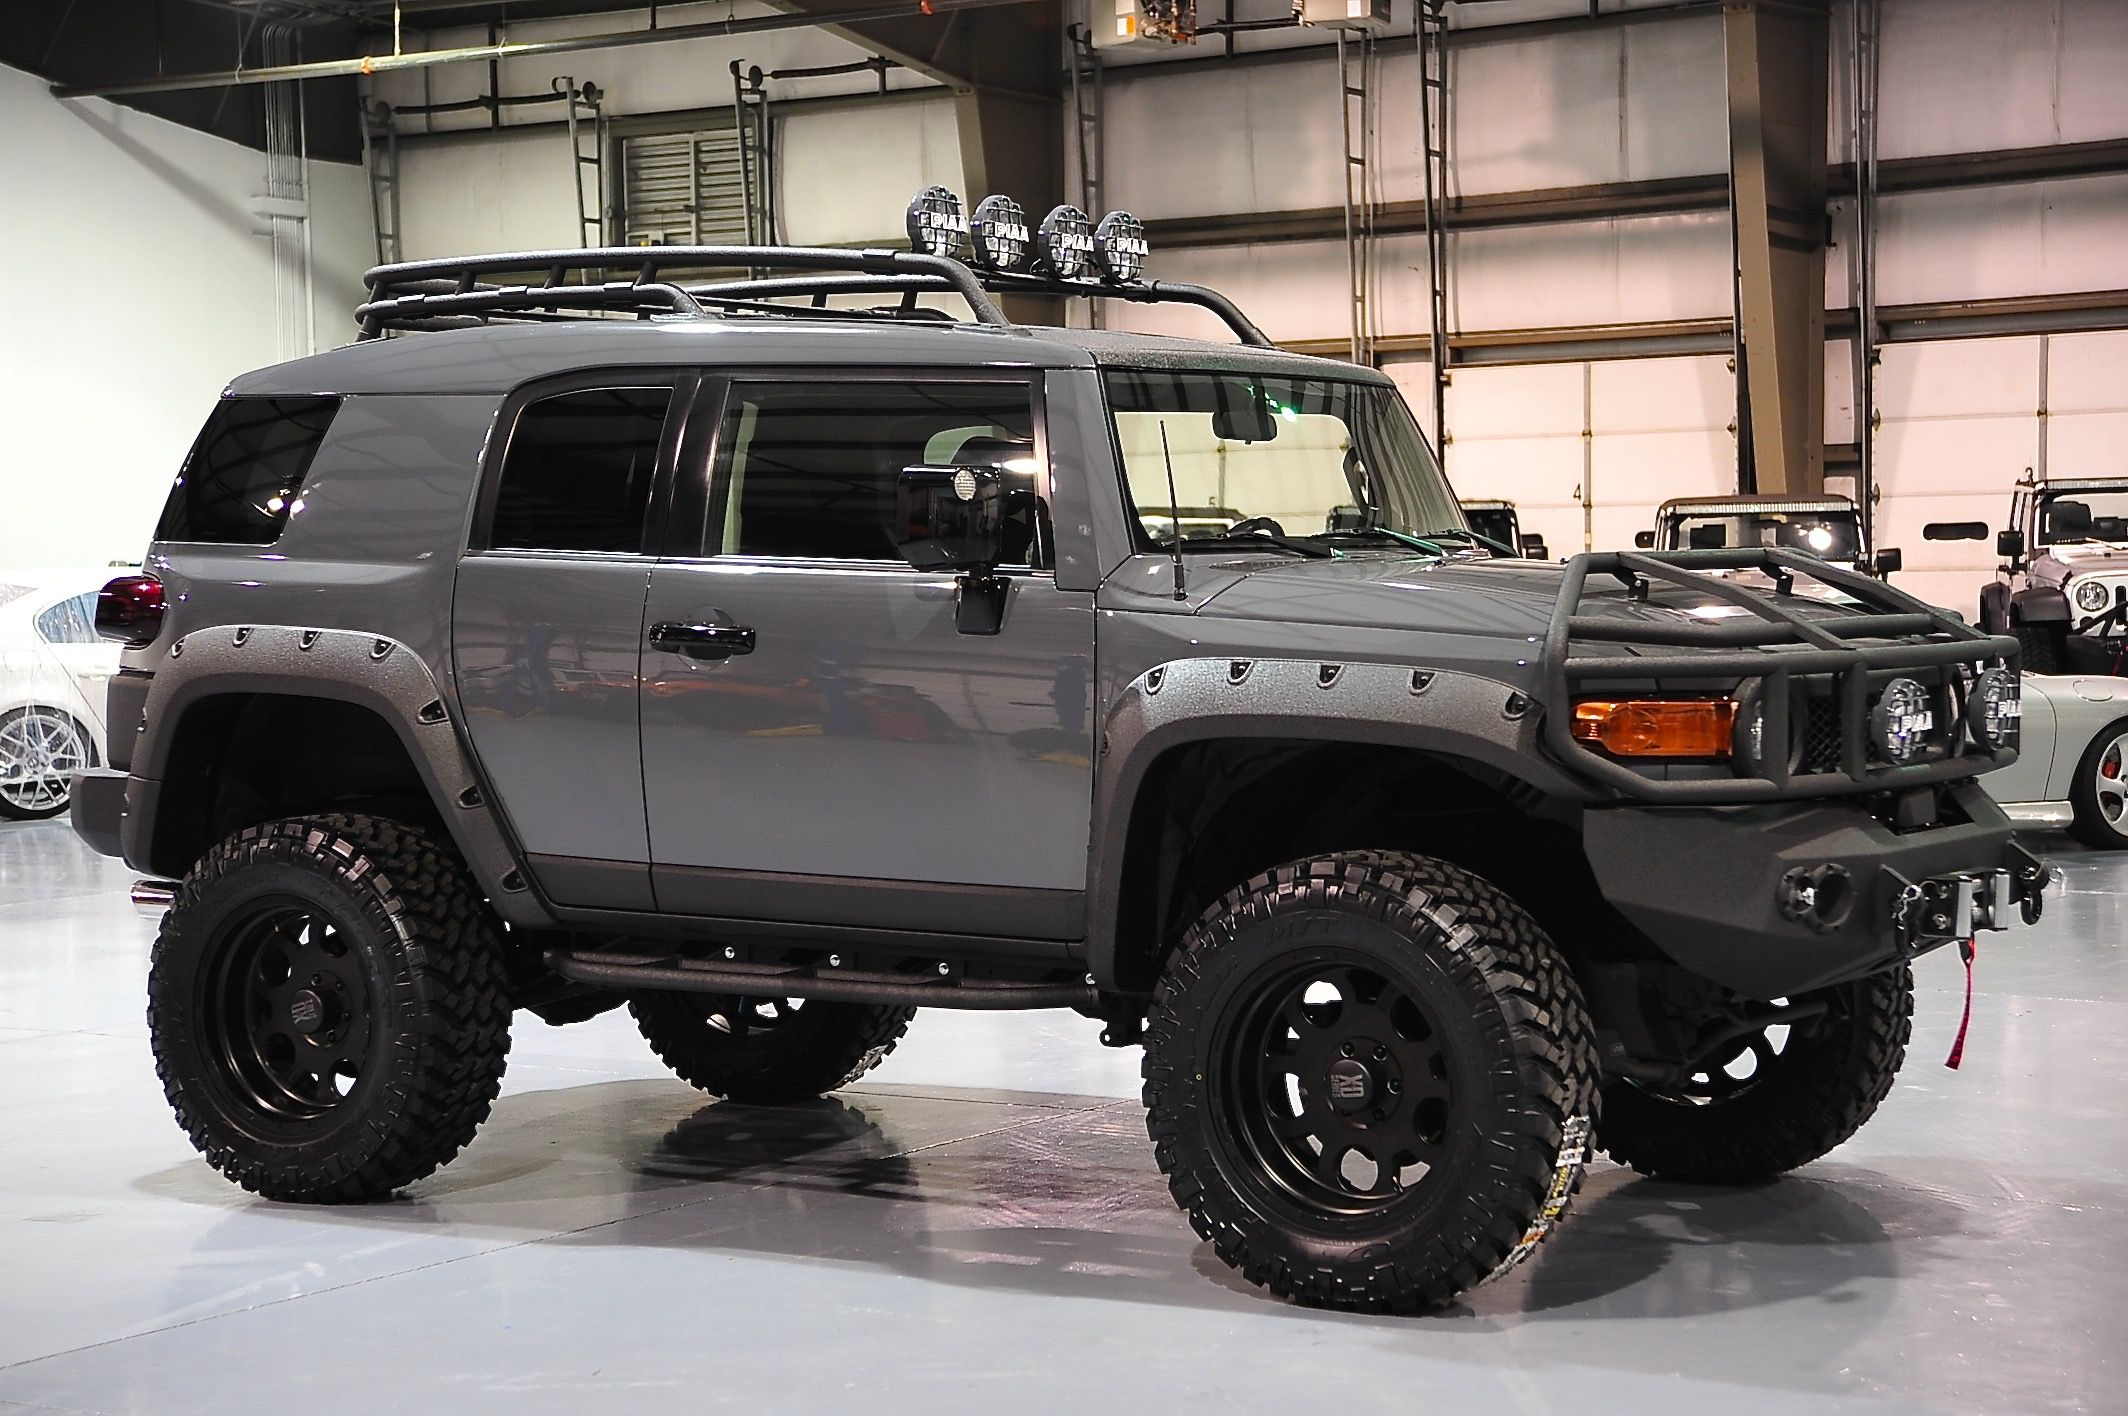 Fj Gray 1 Davis Autosports Fj Cruiser Mods Fj Cruiser Accessories Toyota Cruiser